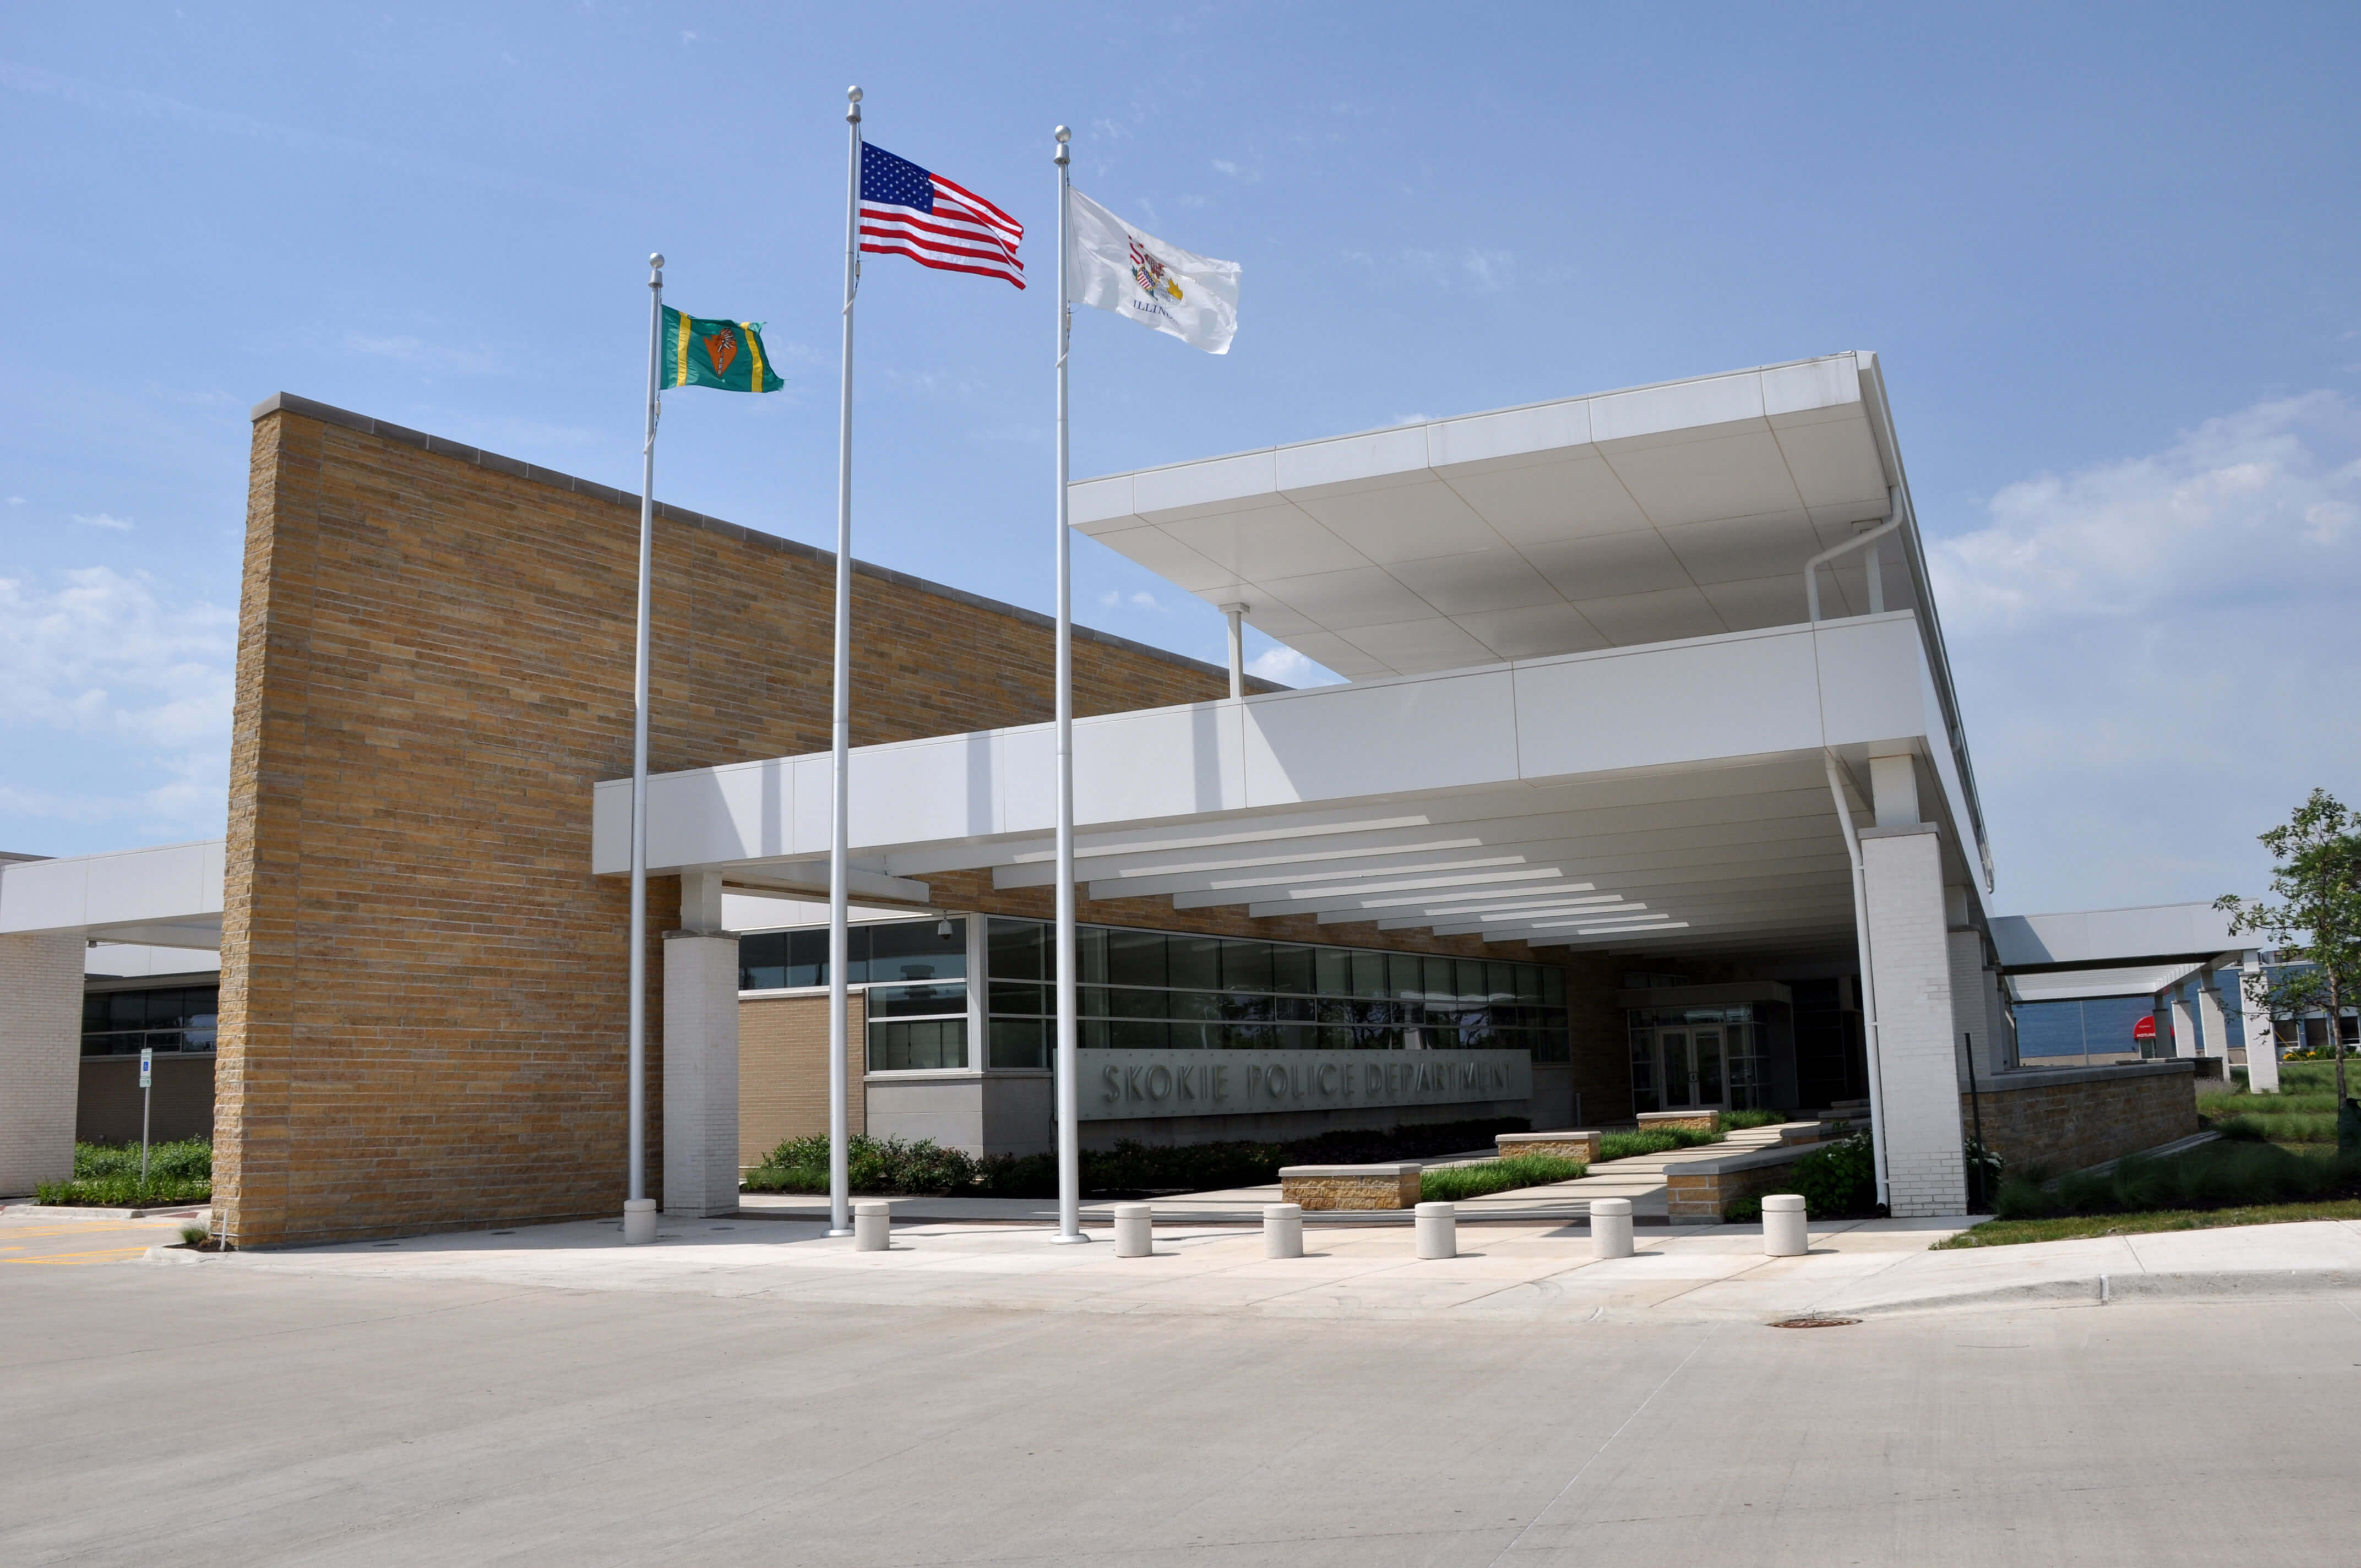 Skokie Police Department Building